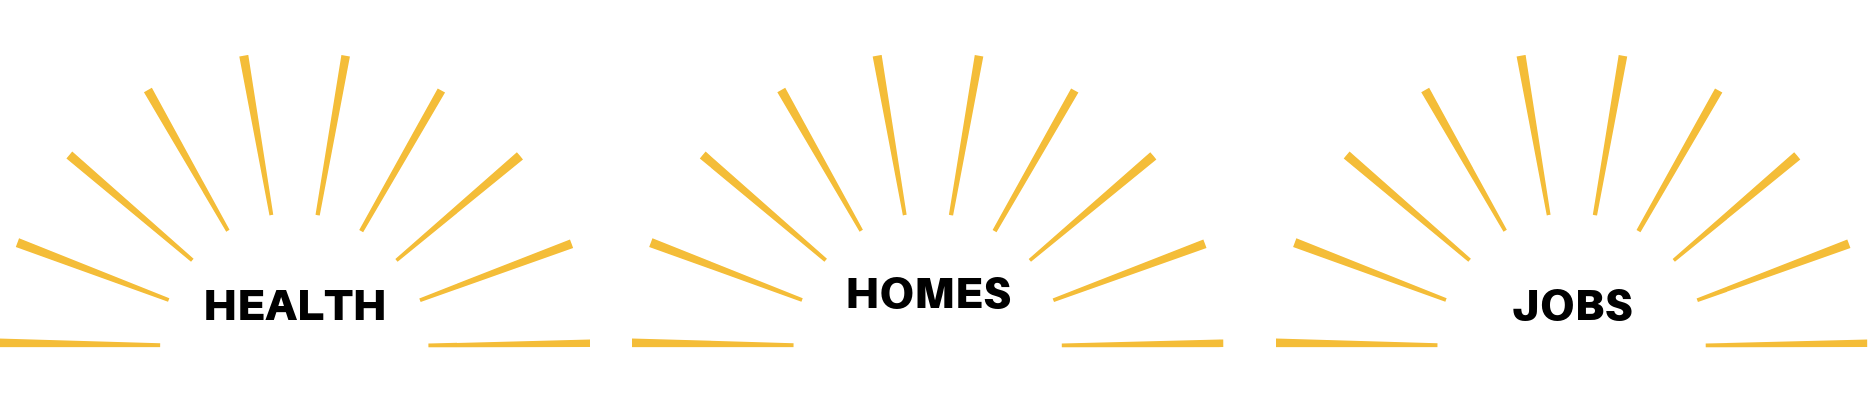 health homes jobs.png